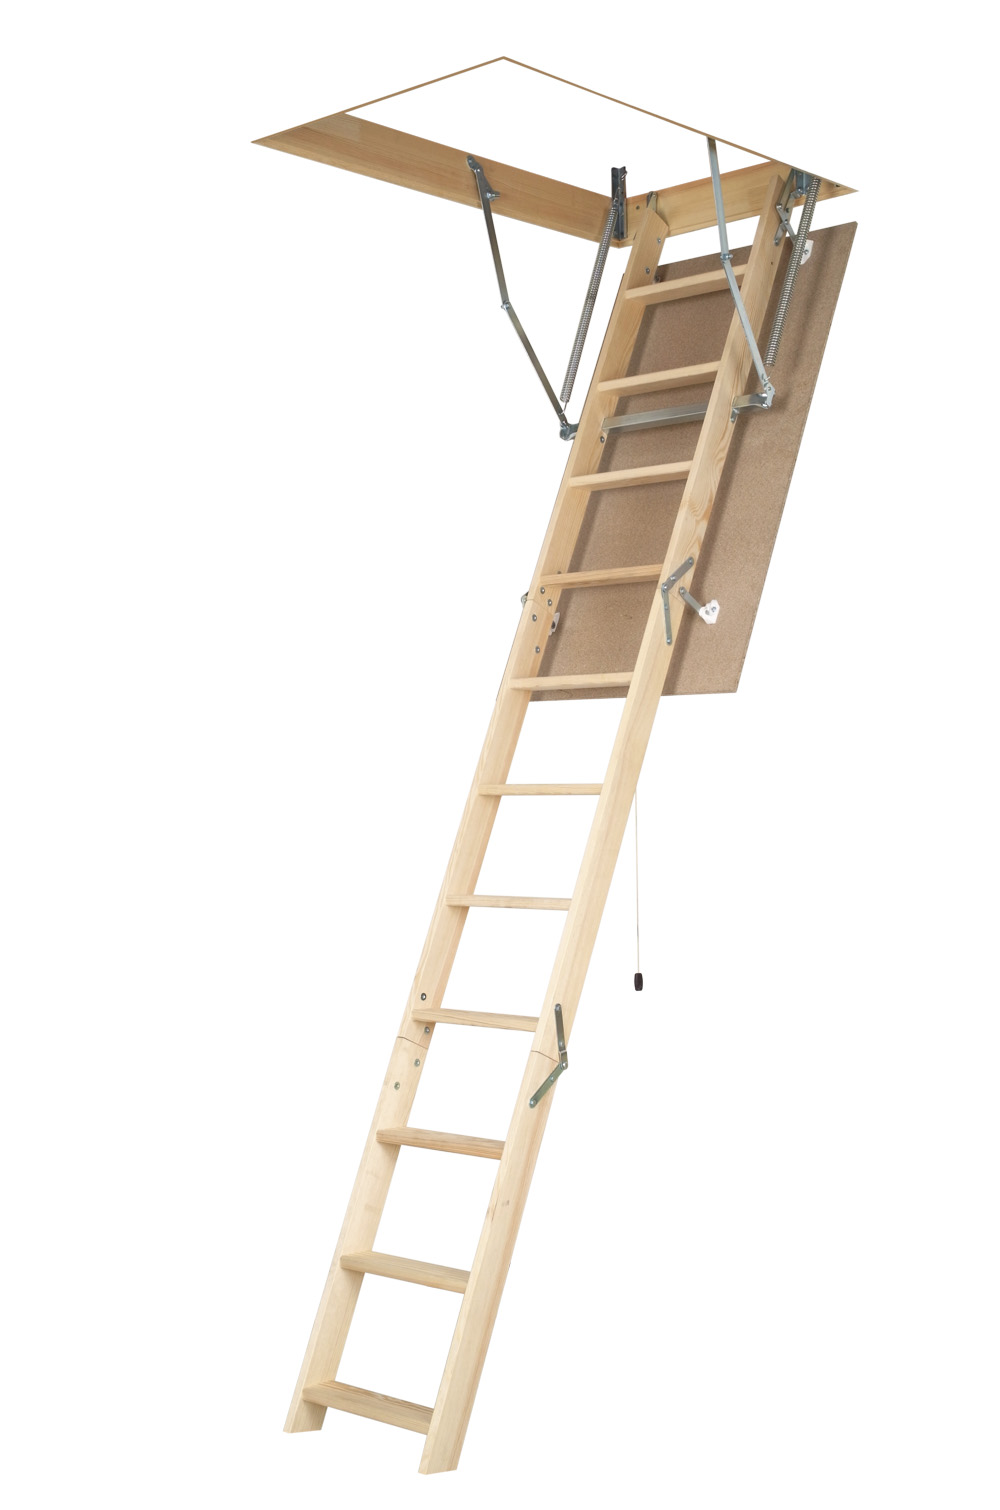 DIY BASIC WOODEN ATTIC LADDER